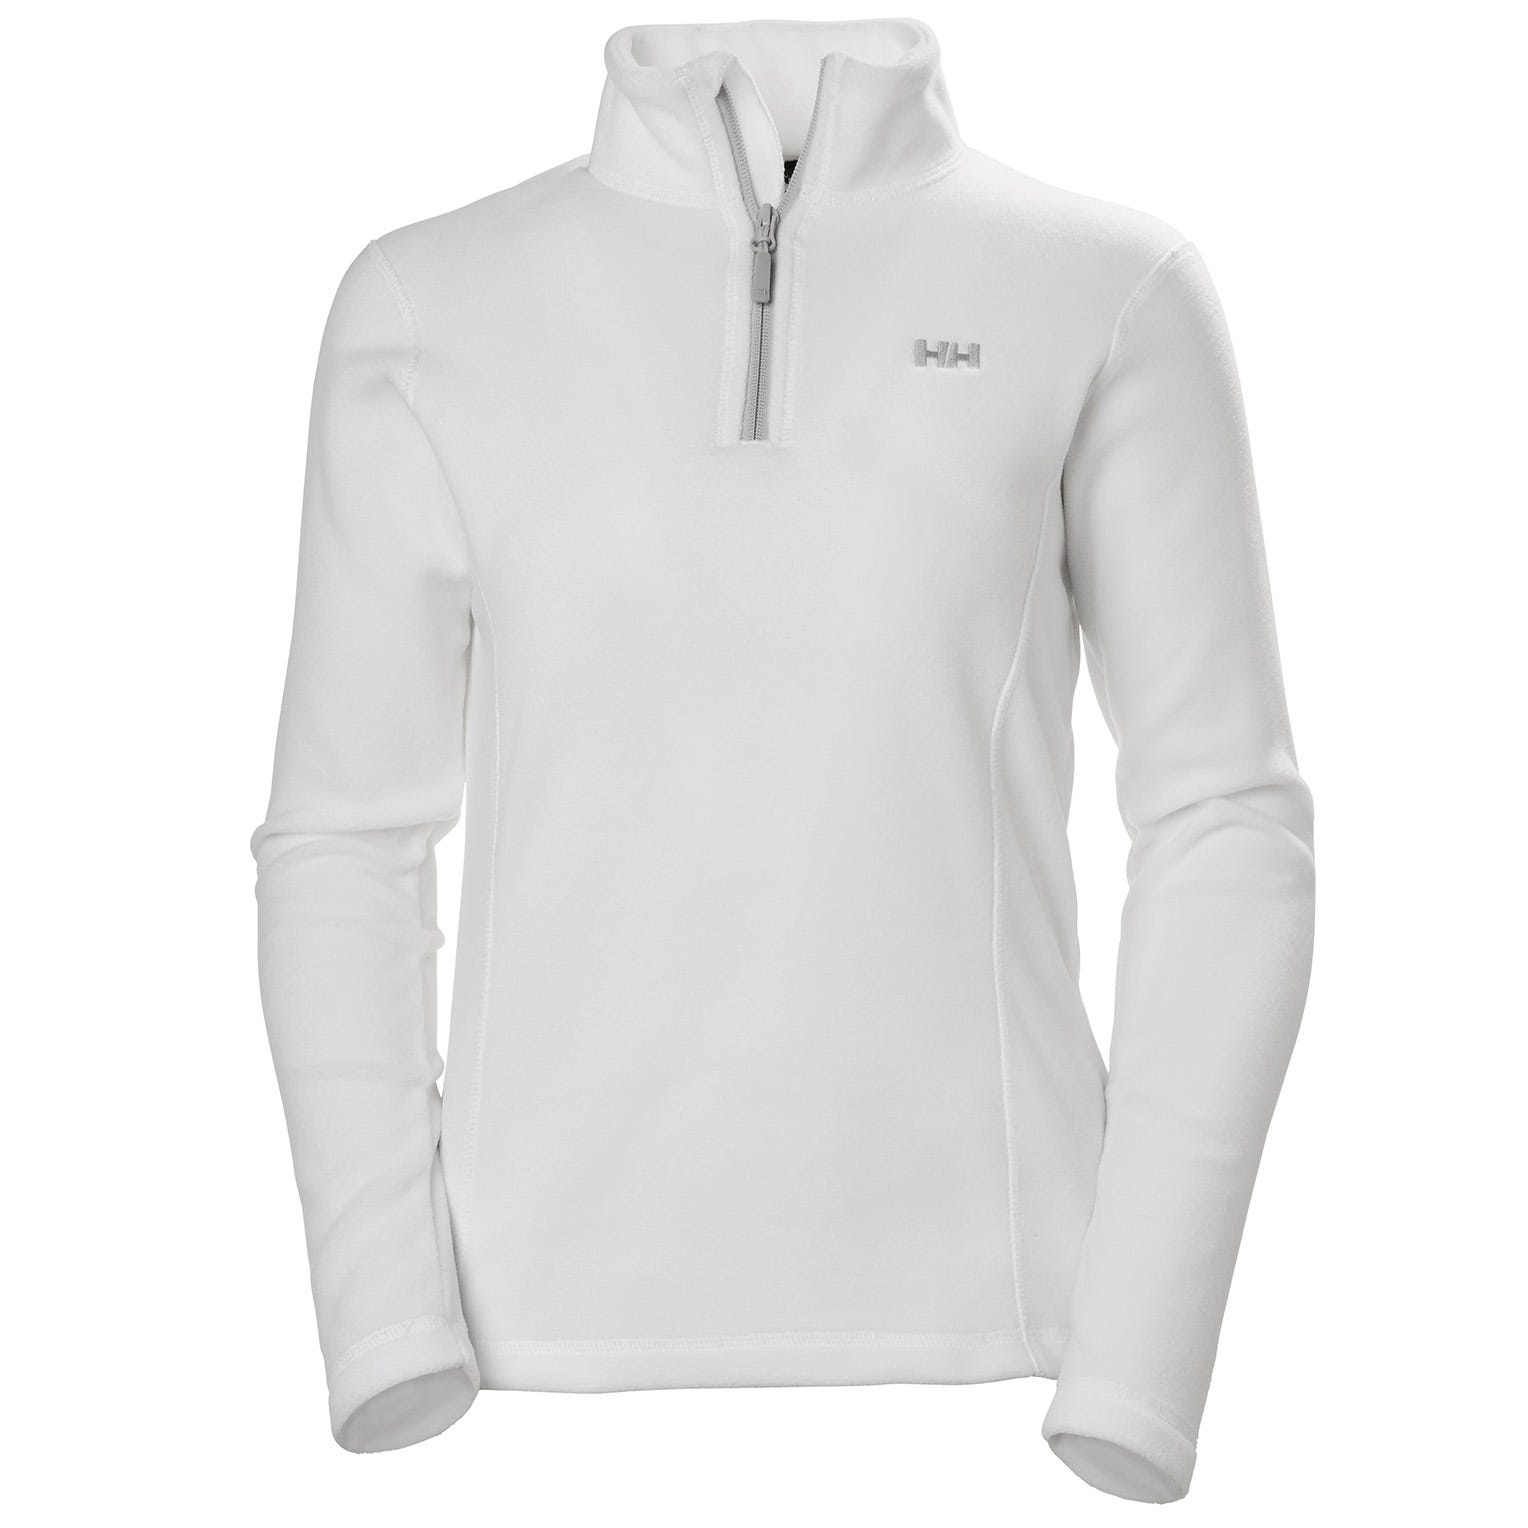 Mujer Helly Hansen Day Breaker 1//2 Zip Fleece Chaqueta con Forro